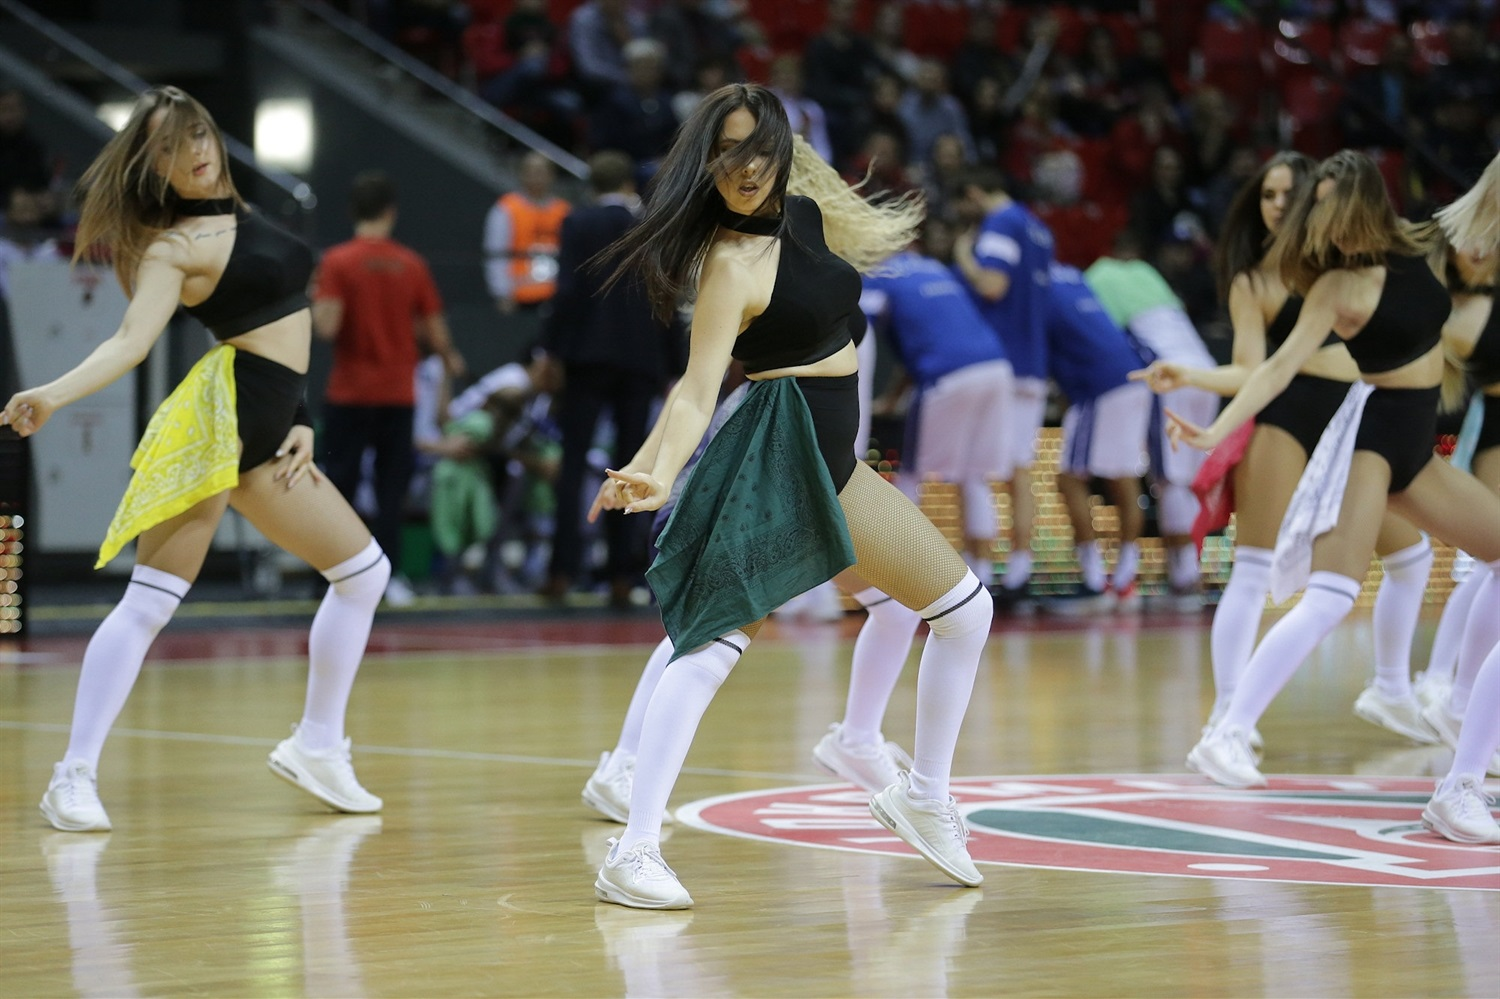 Cheerleaders - Lokomotiv Kuban Krasnodar (photo Lokomotiv) - EC18